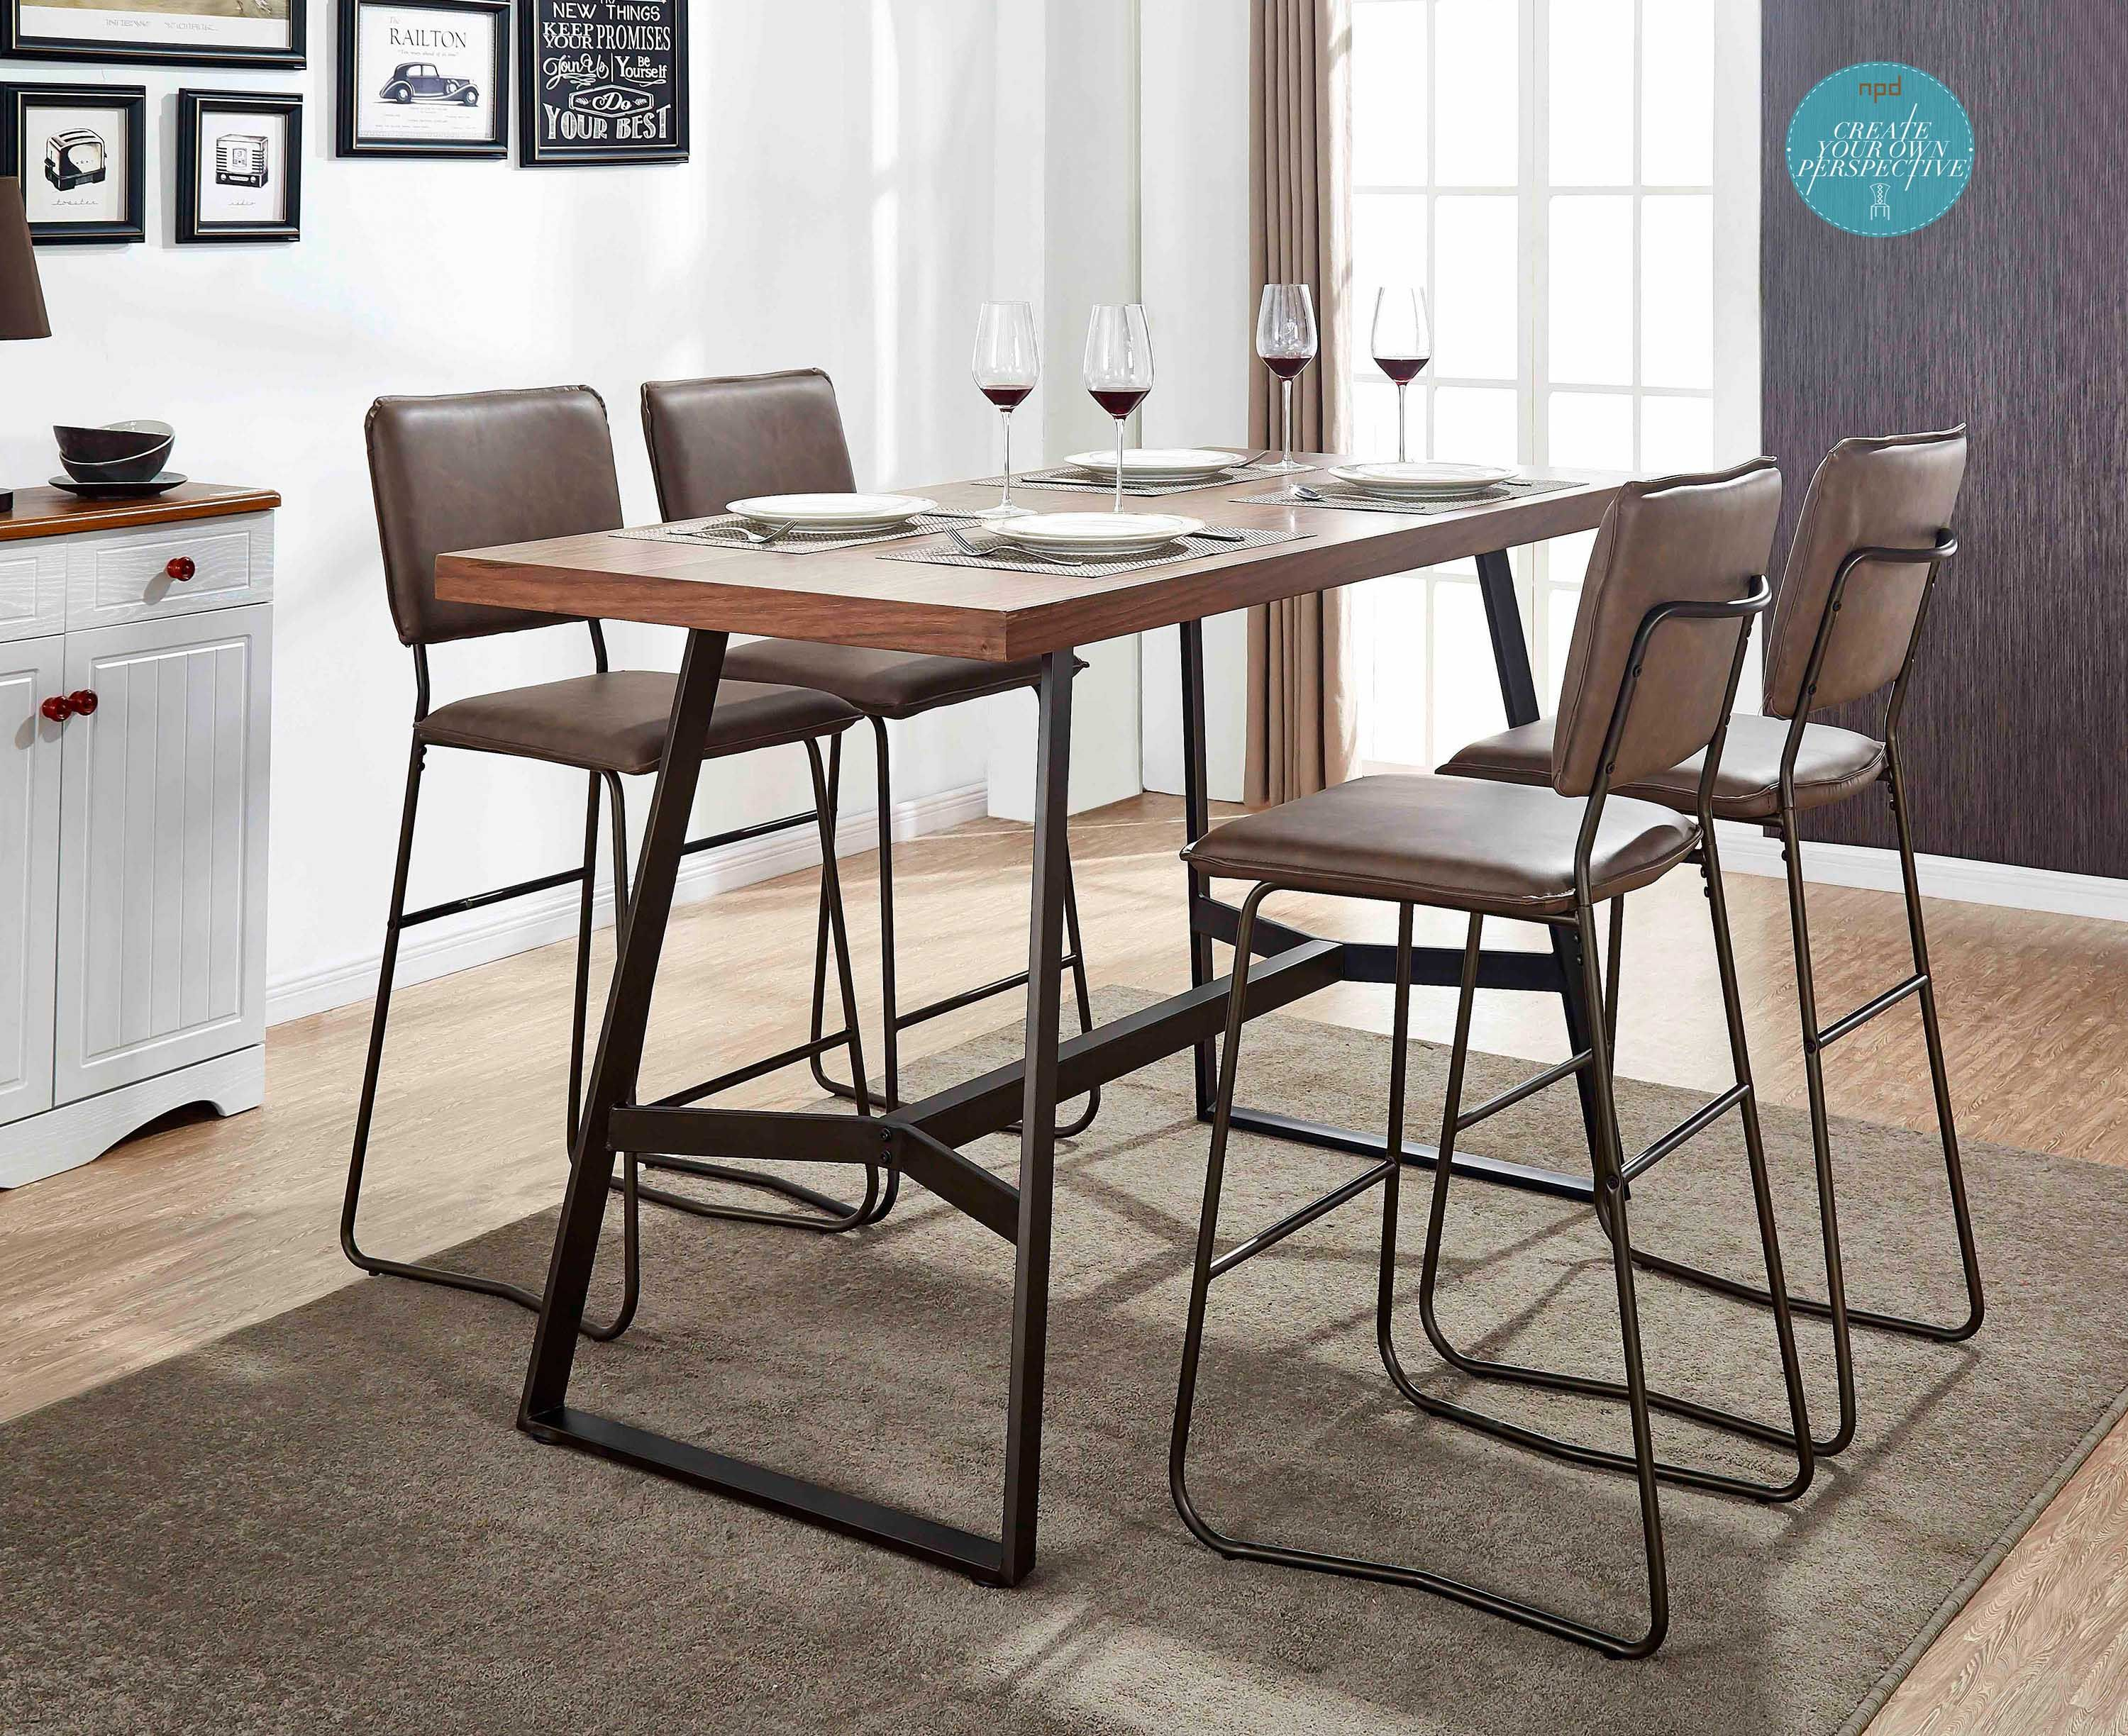 Simple but sharp and stylish nash bar stools paired with jersey walnut veneer high table completing your modern dining section incorporating an industrial